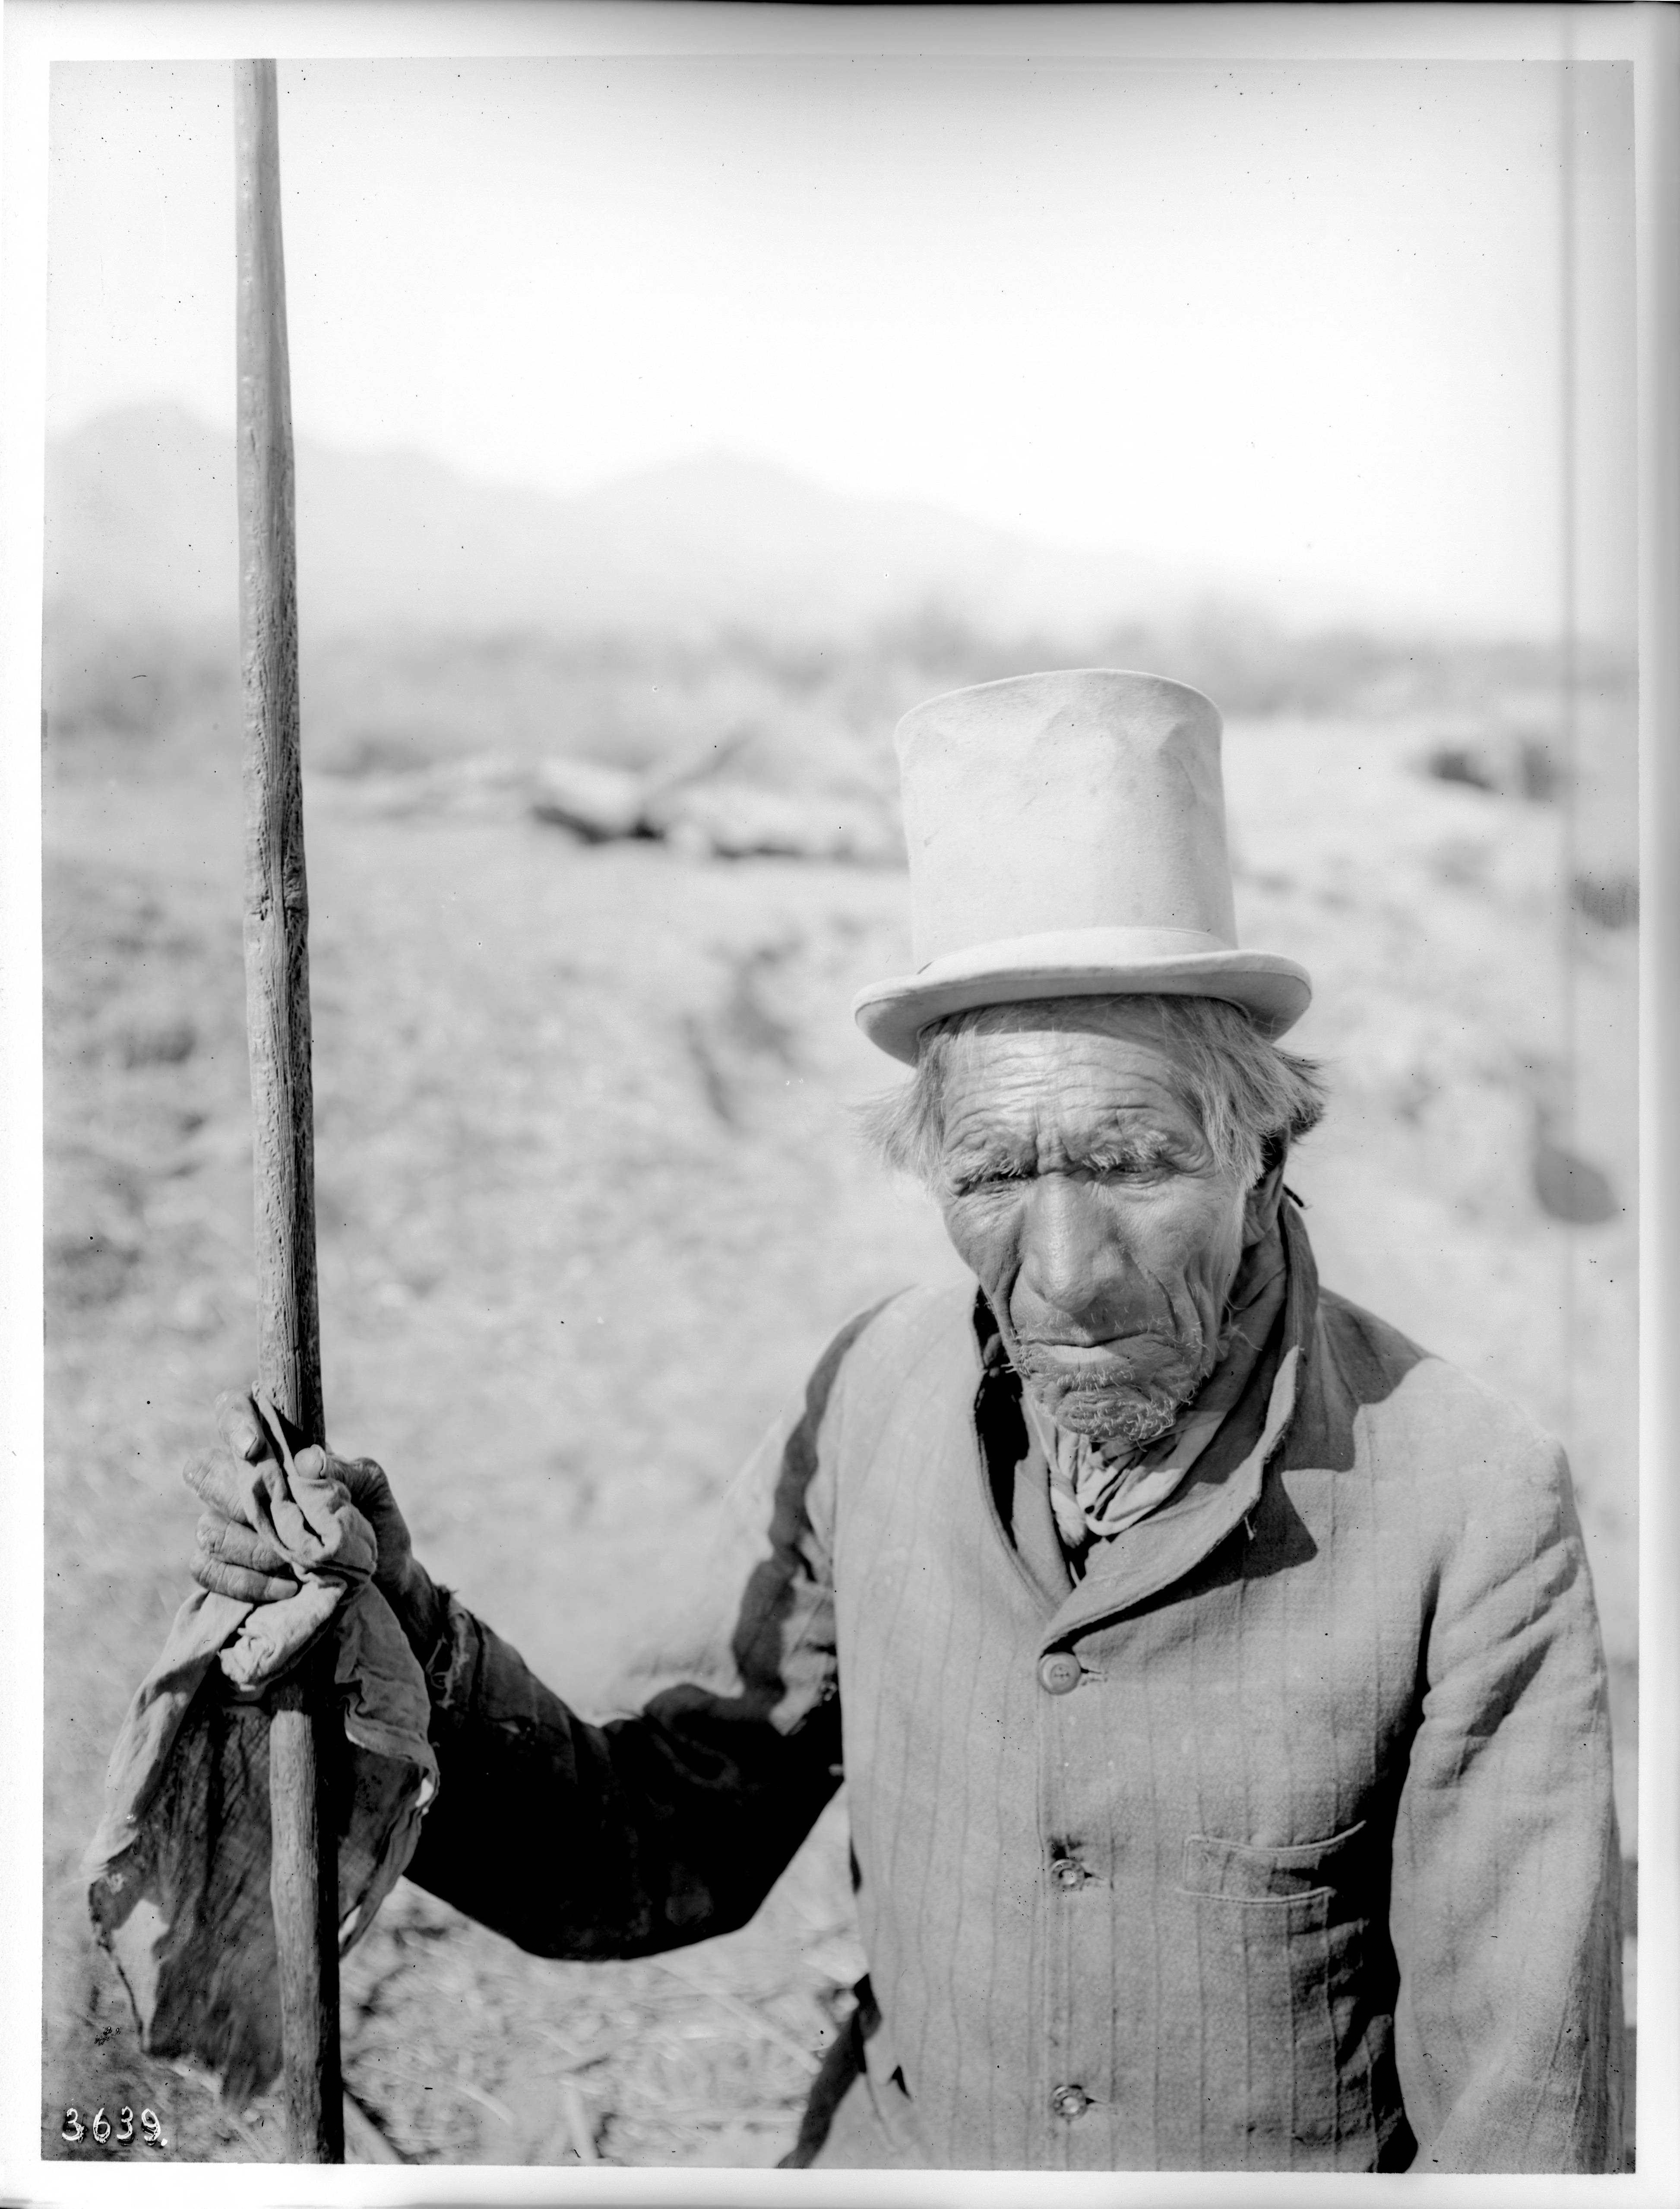 Old_Pima_Indian_man%2C_Vaugh-Cum%2C_a_medicine_man%2C_Pima%2C_Arizona%2C_ca.1900_%28CHS-3639%29.jpg